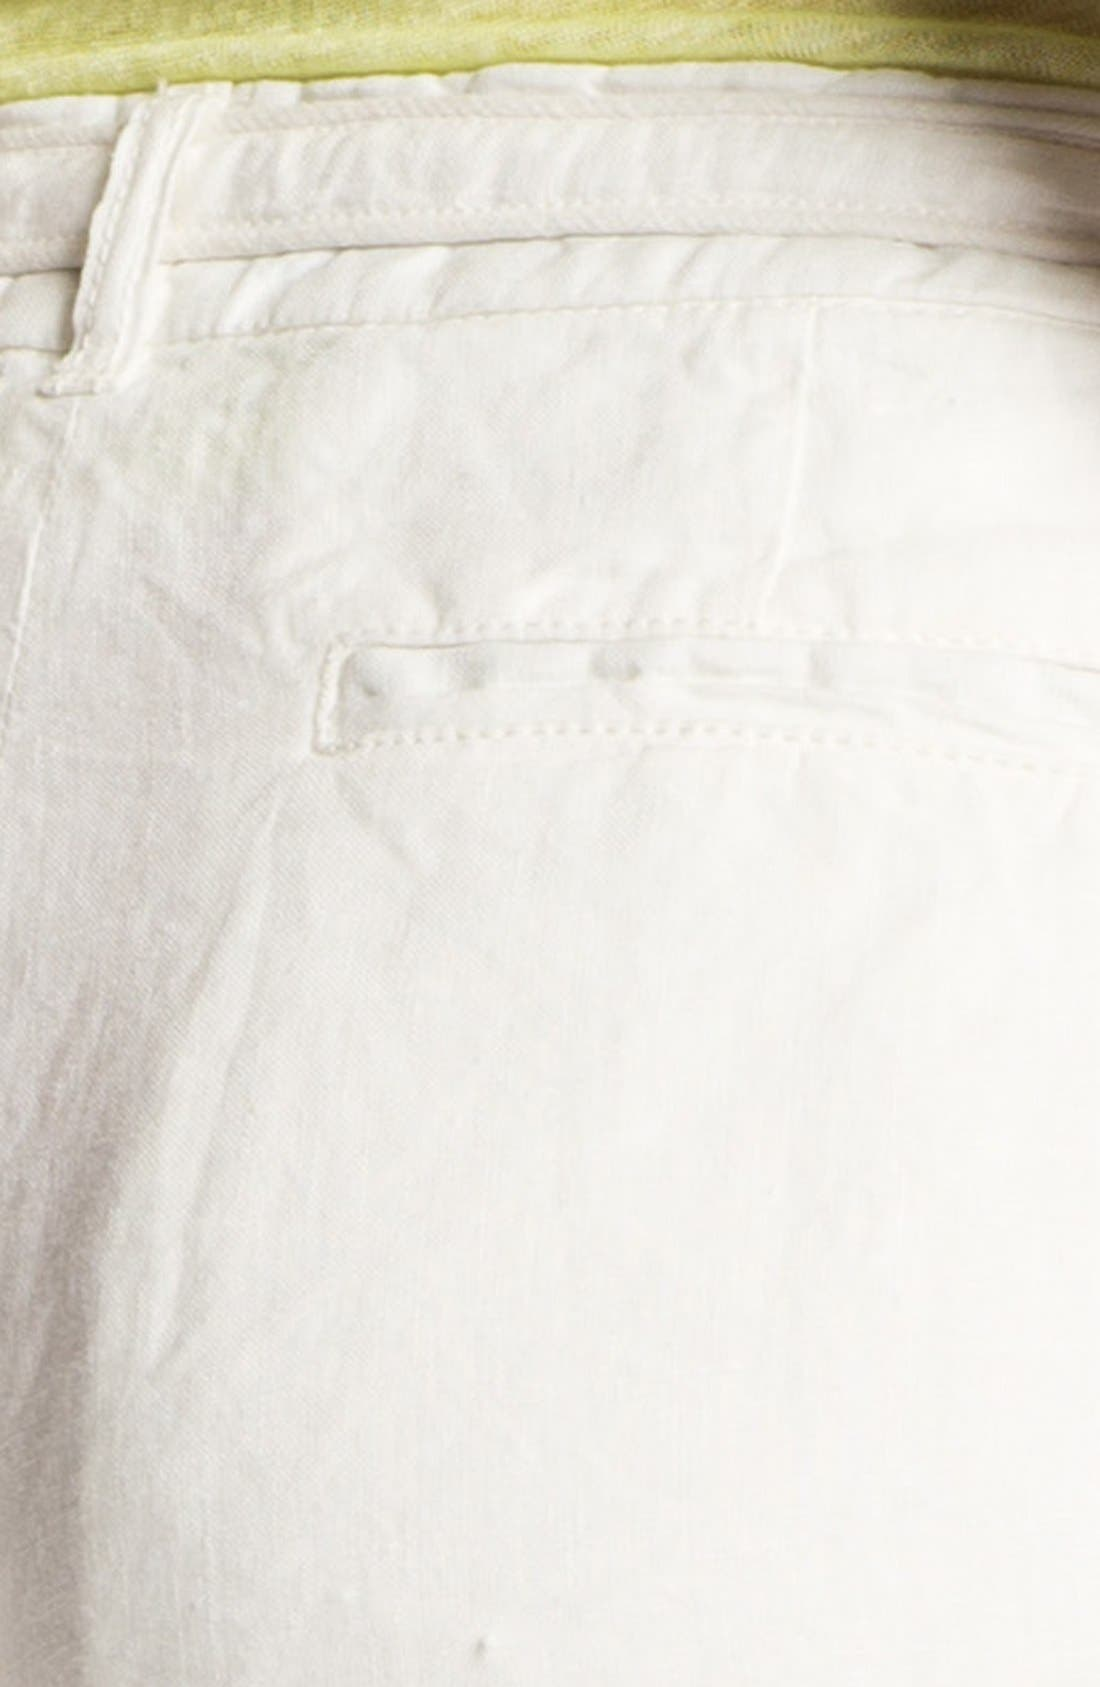 JOIE,                             'Jewell' Linen Shorts,                             Alternate thumbnail 3, color,                             114